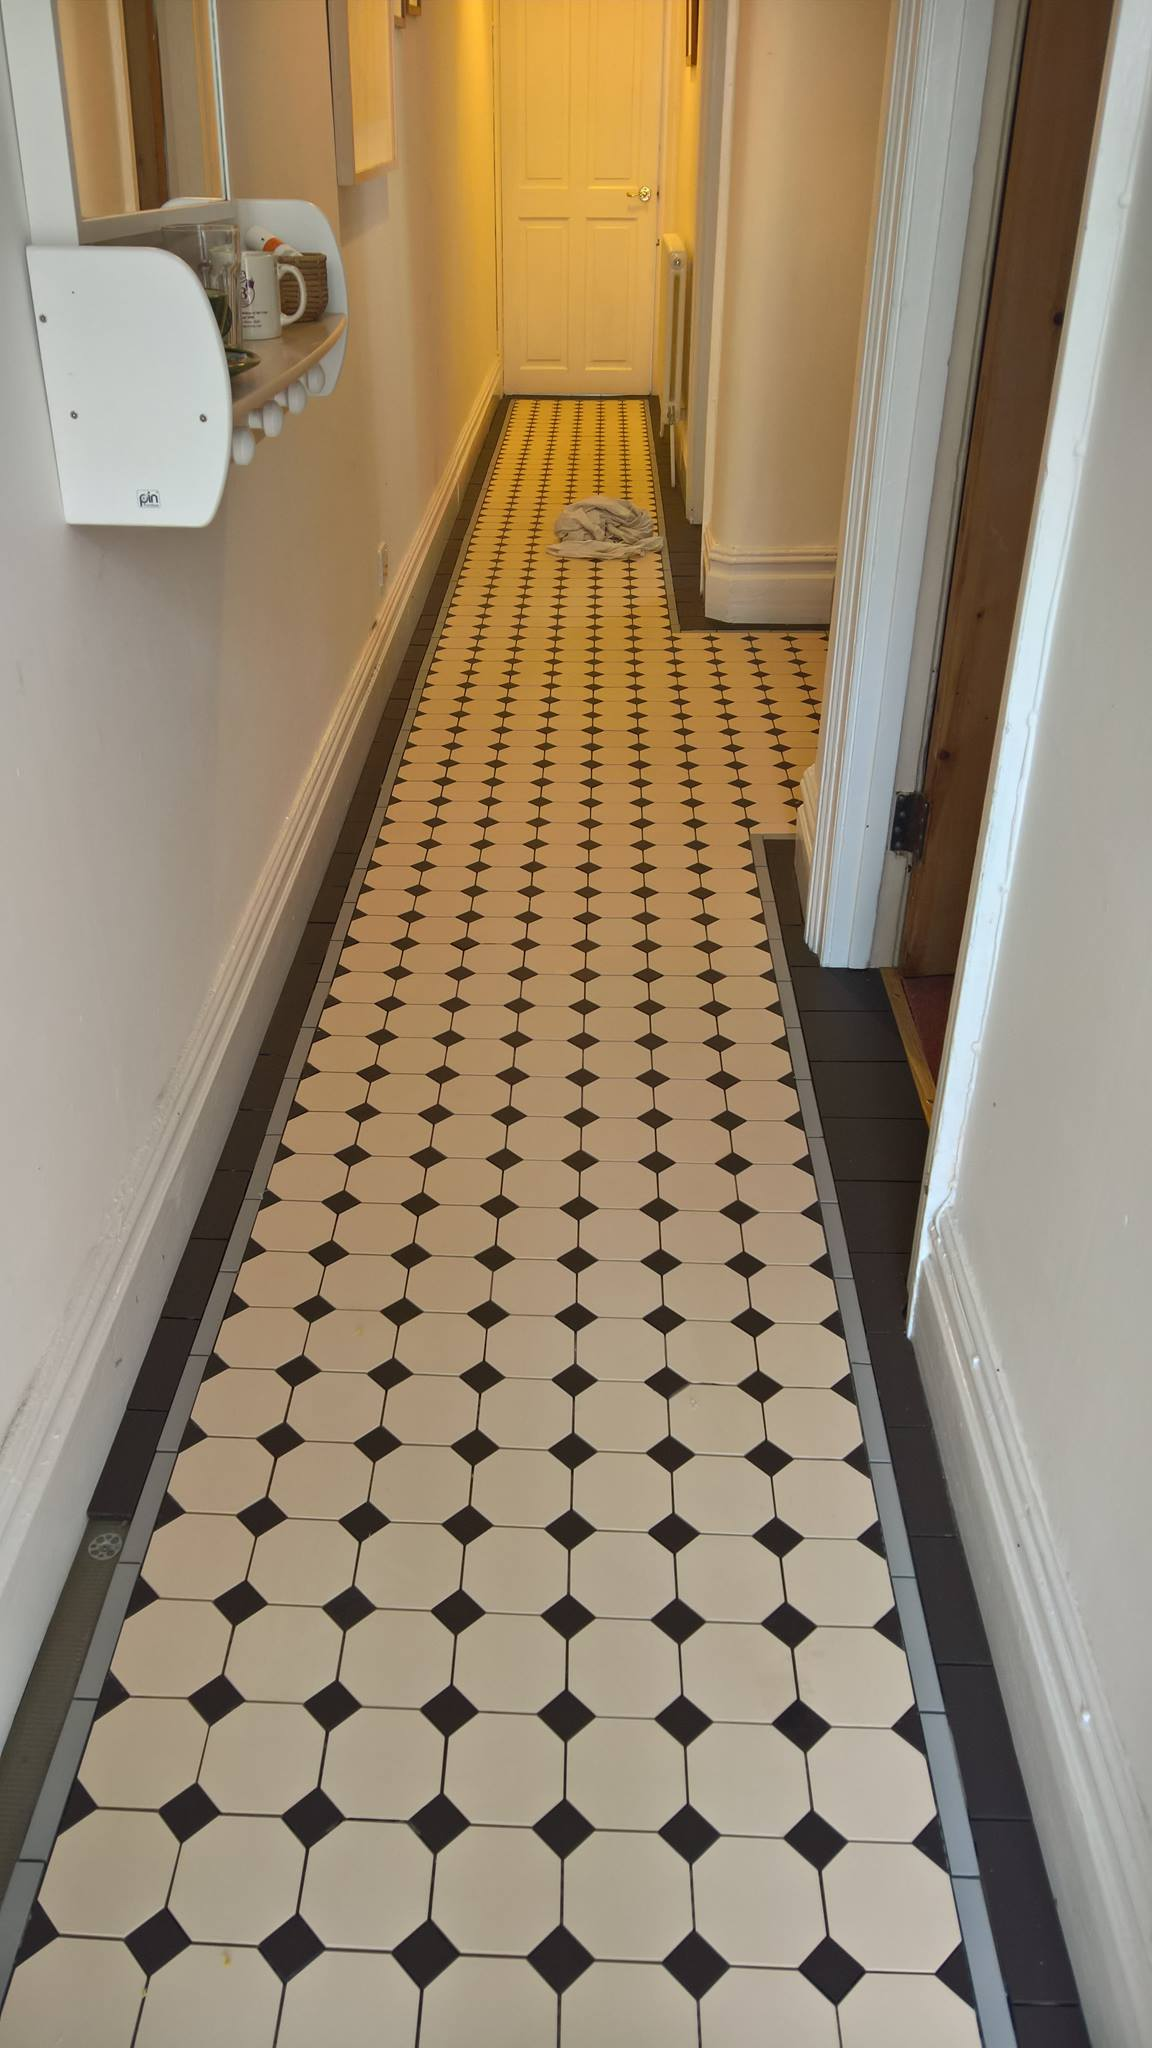 photos of a victorian floor installation by bishopston tiles